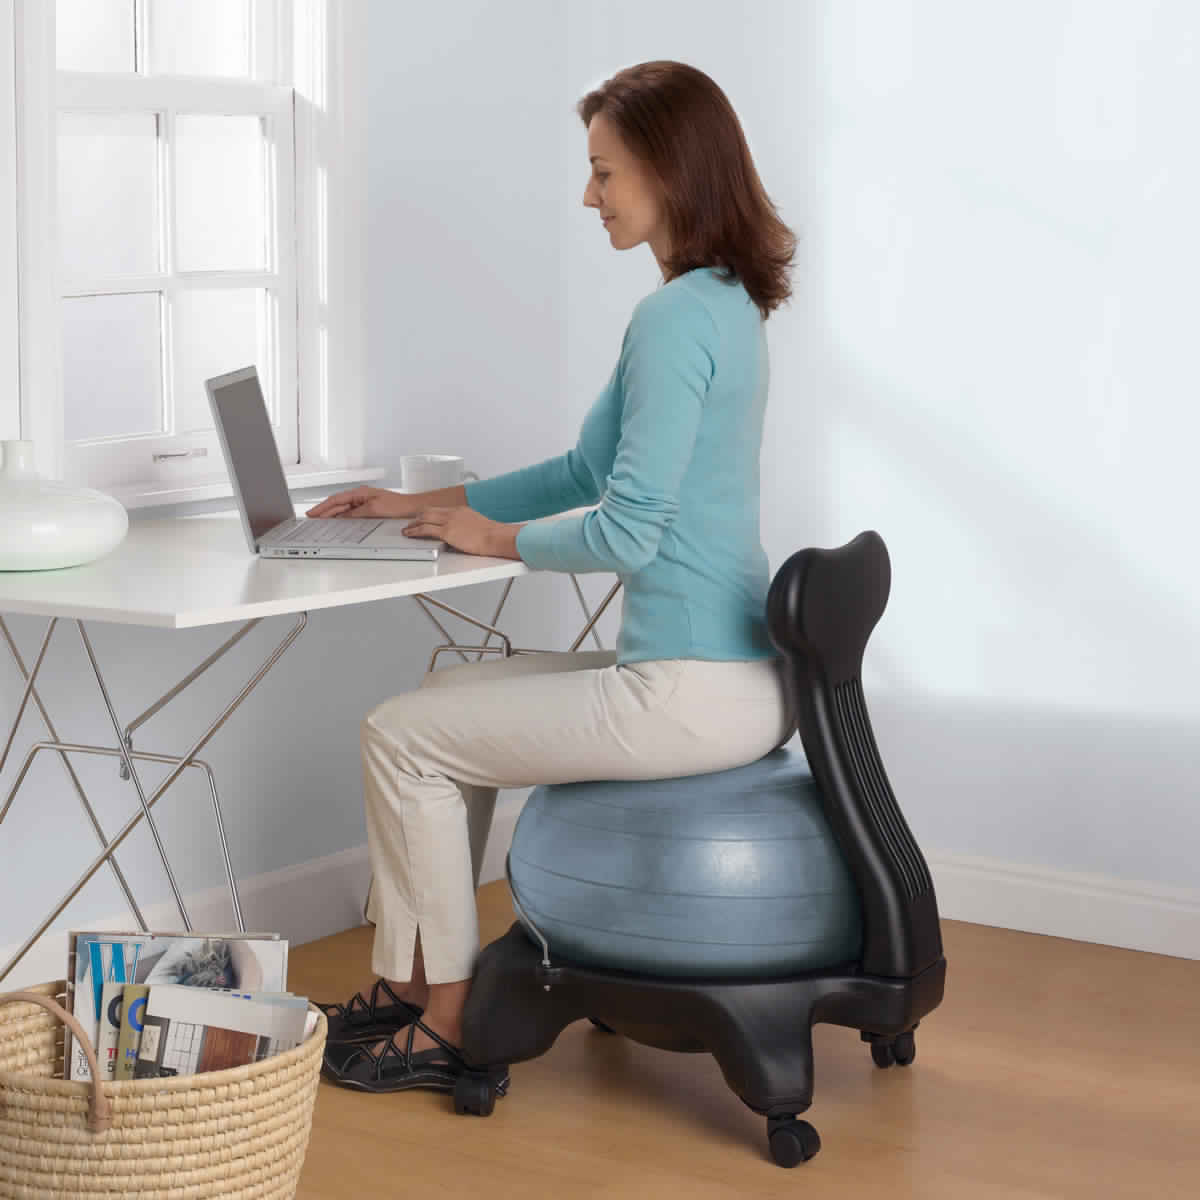 Yoga Ball Desk Chair Benefits Of Using Yoga Ball Chair For Your Home Or Office Pouted